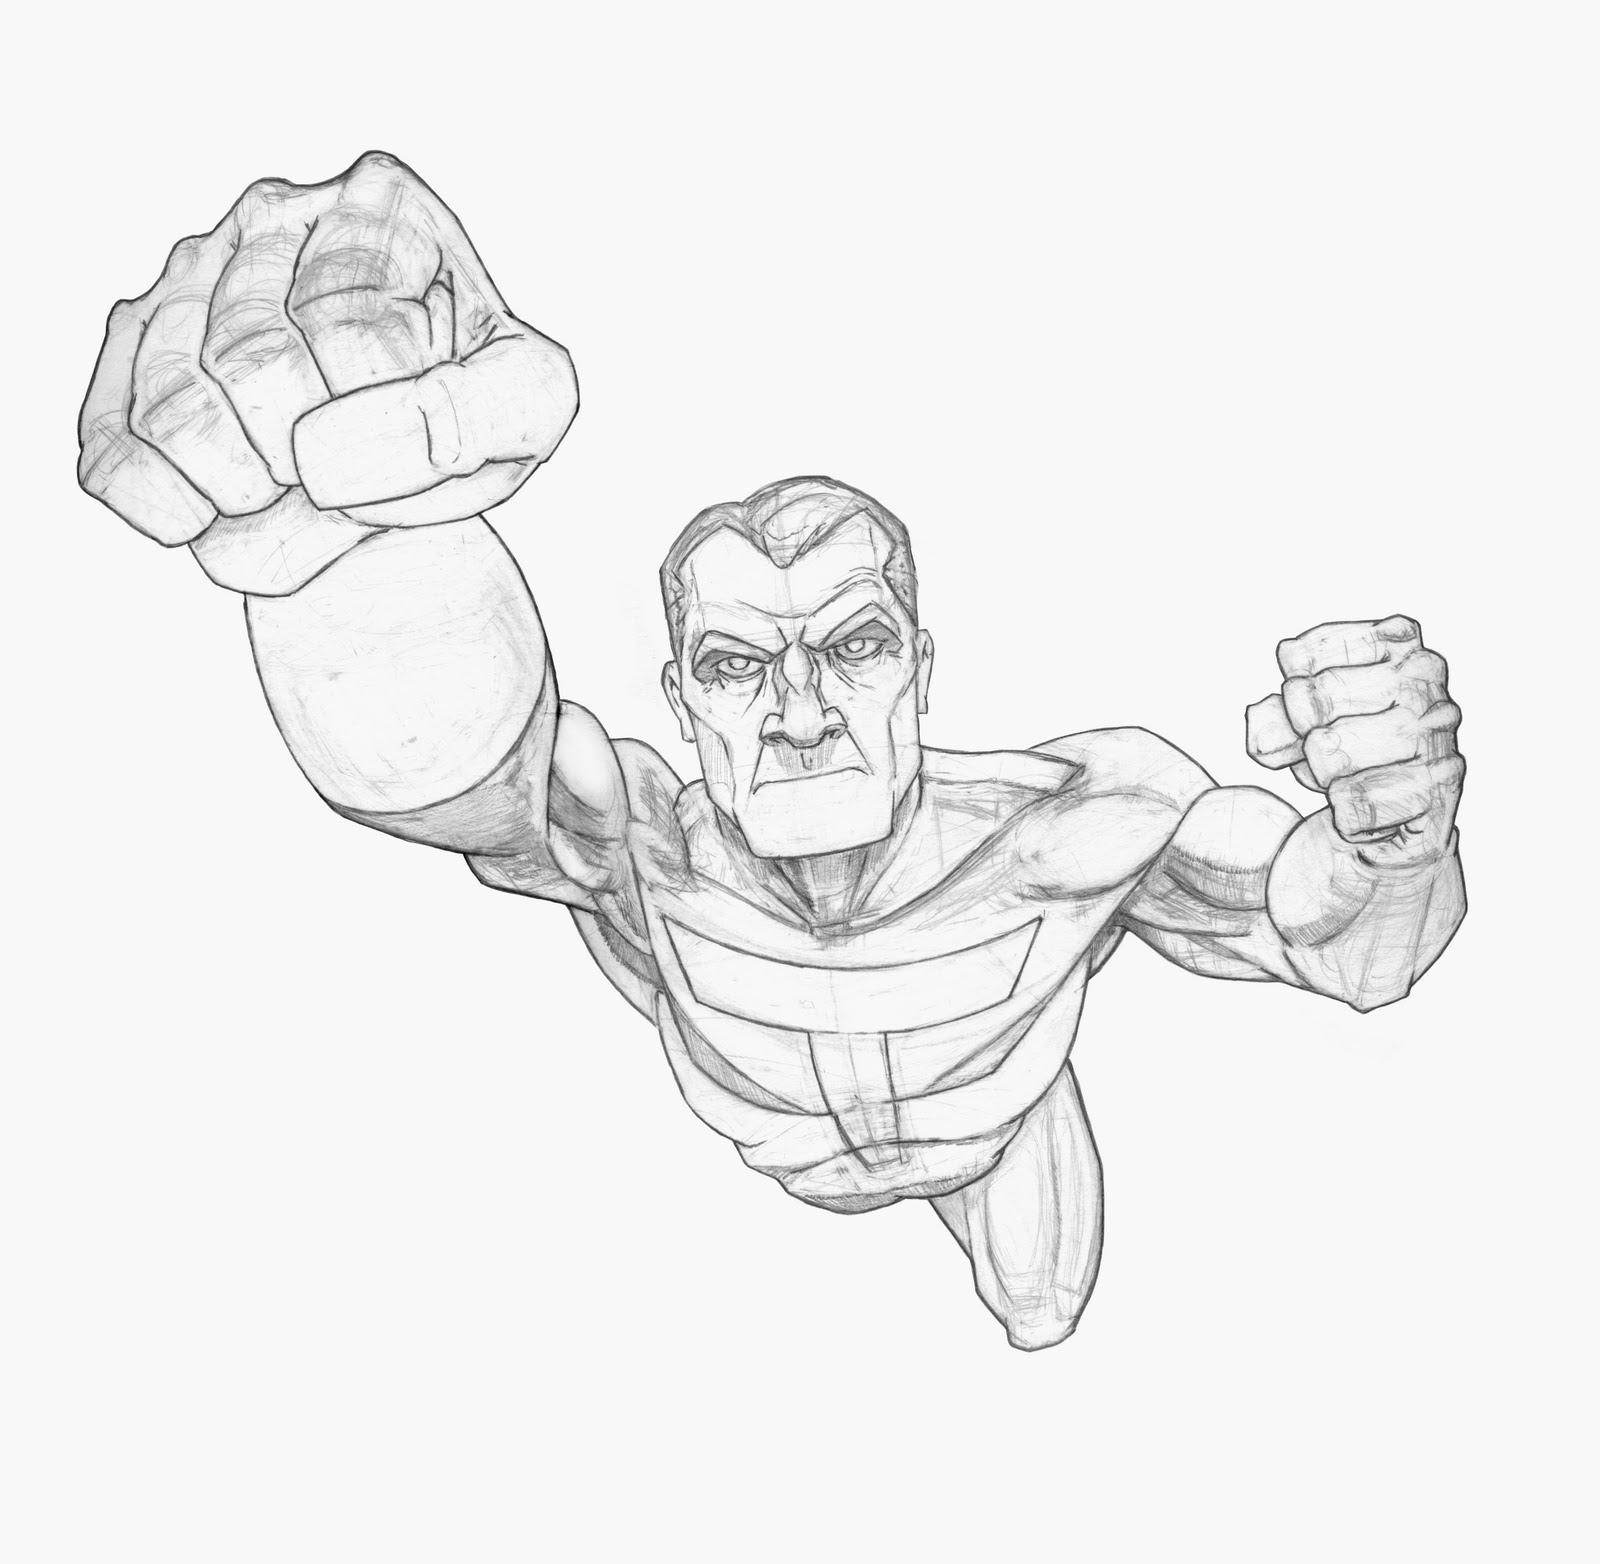 Drawn superman foreshortened Heres been on took working